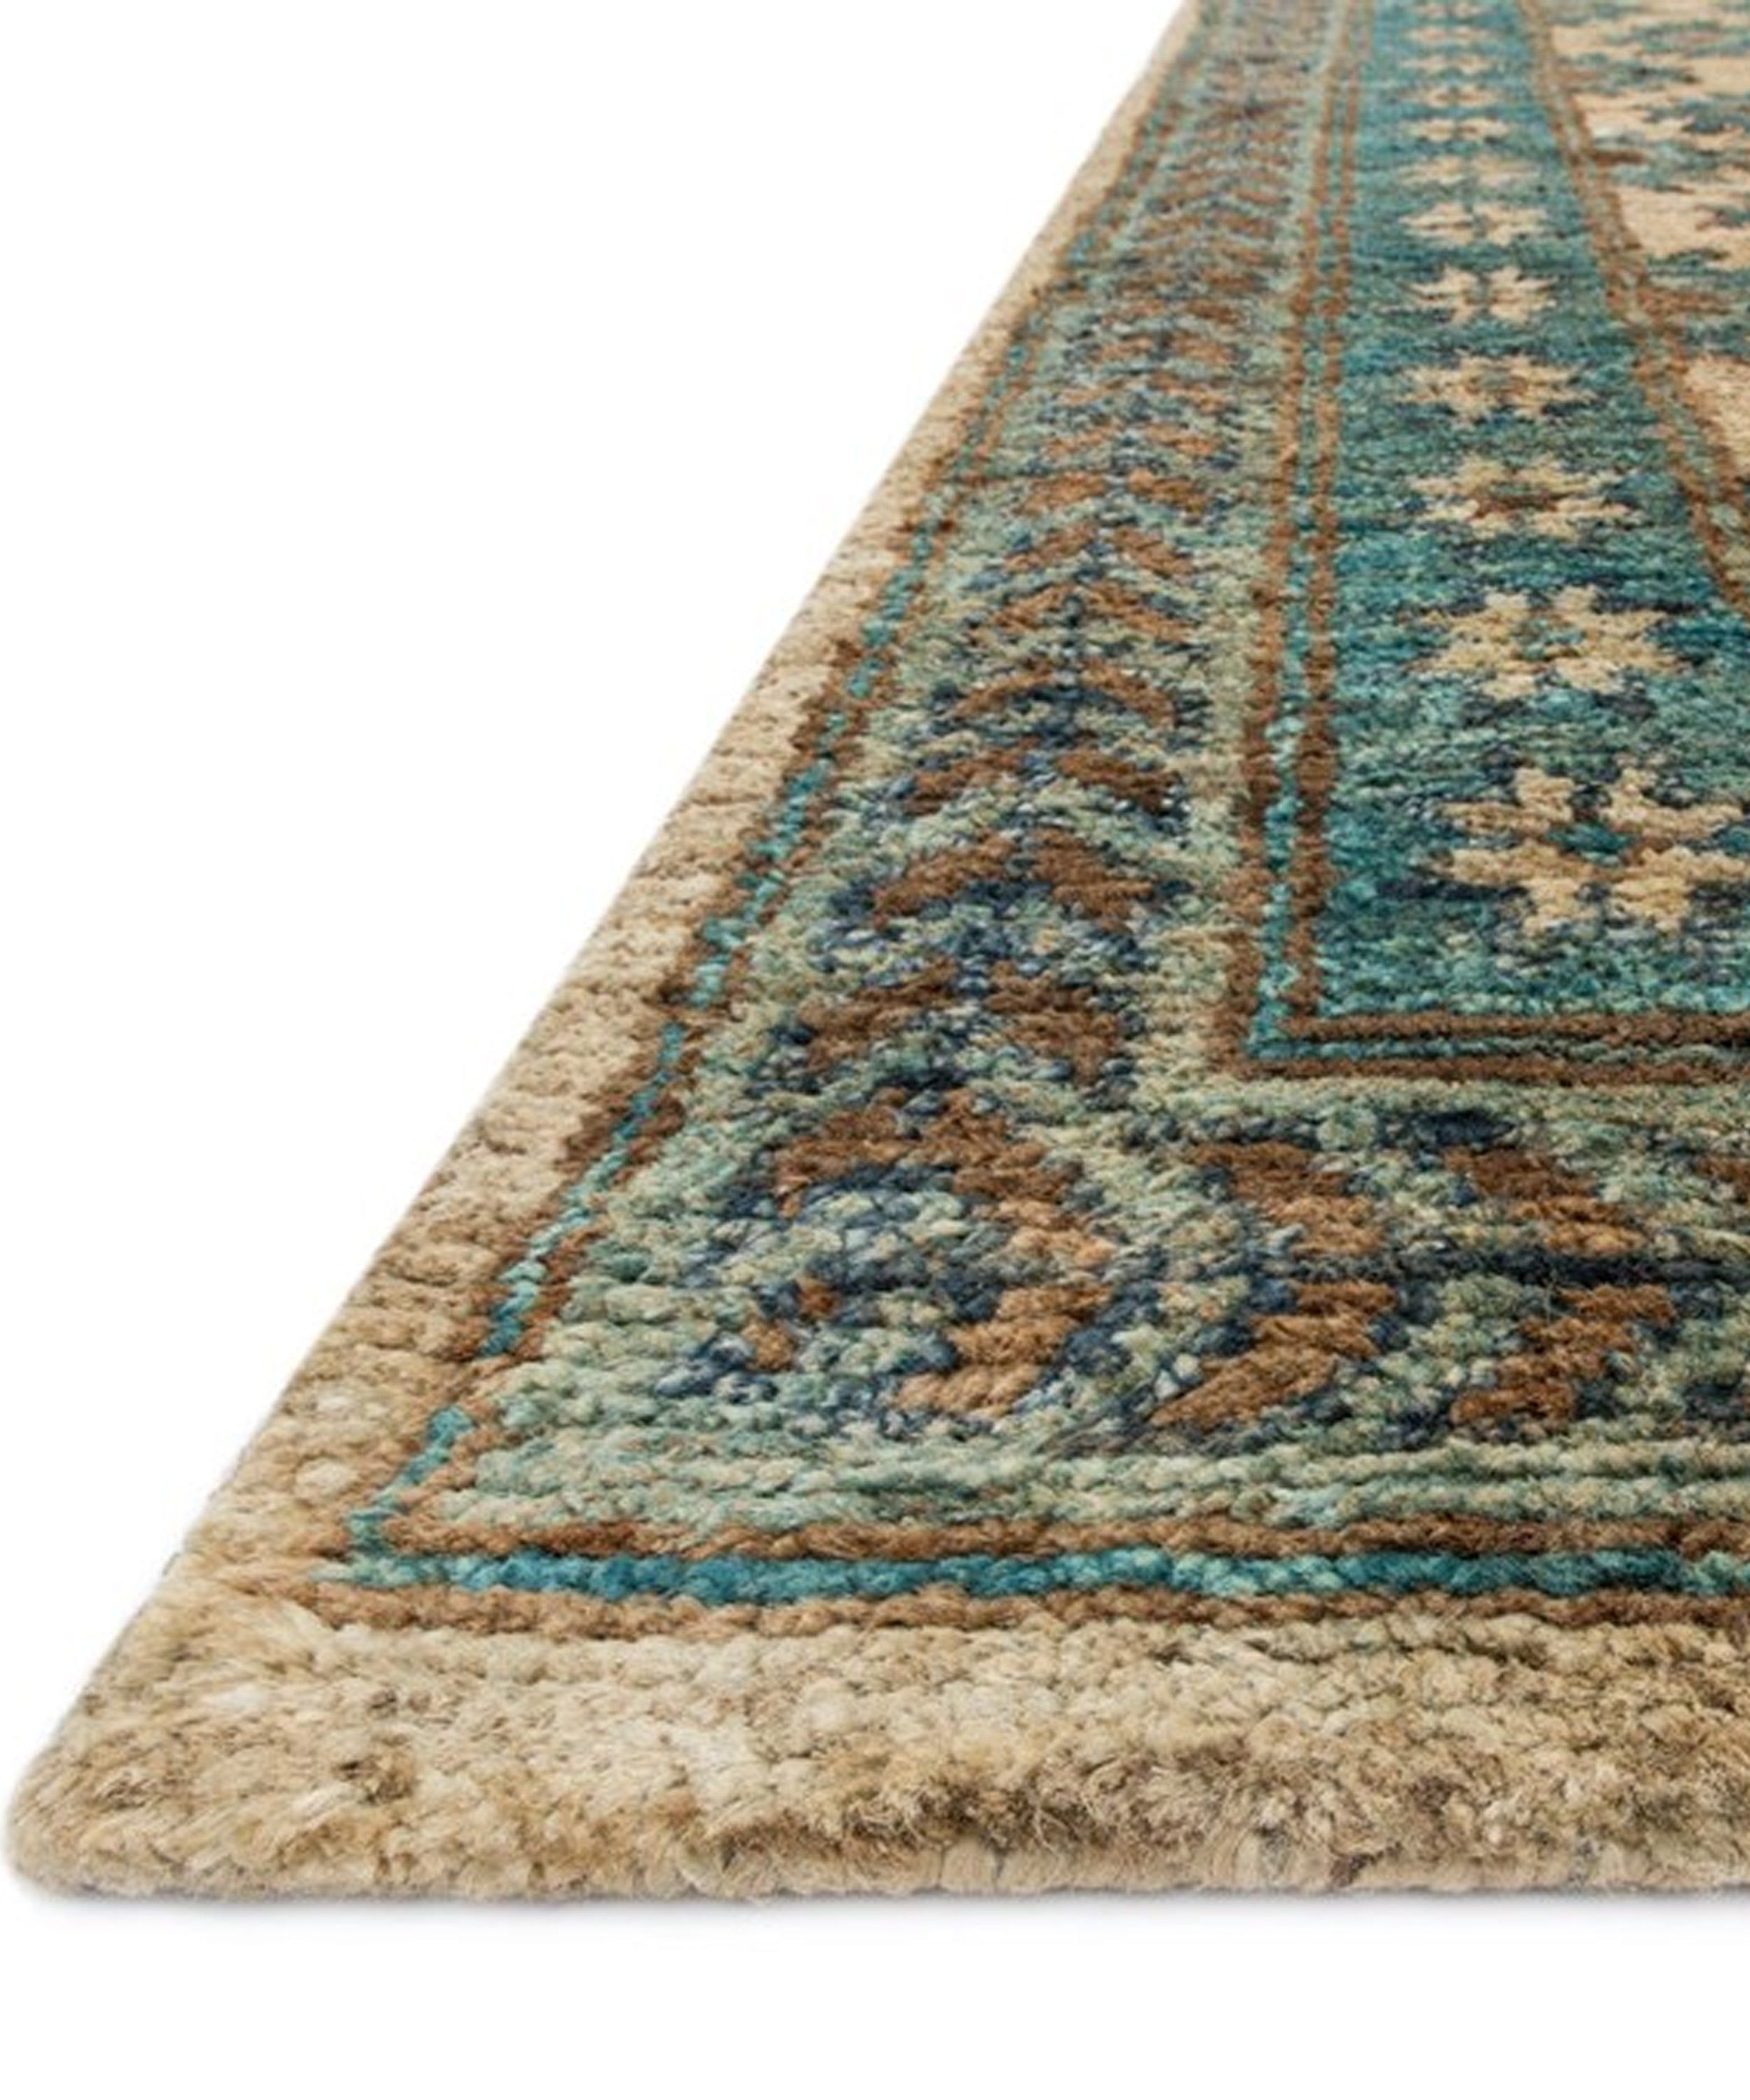 Traveler Rug Ocean Hand Knotted 100 Jute 1 2 Pile Height Available In The Following Sizes 2 X 3 270 00 2 6 X 8 0 840 00 2 6 X 1